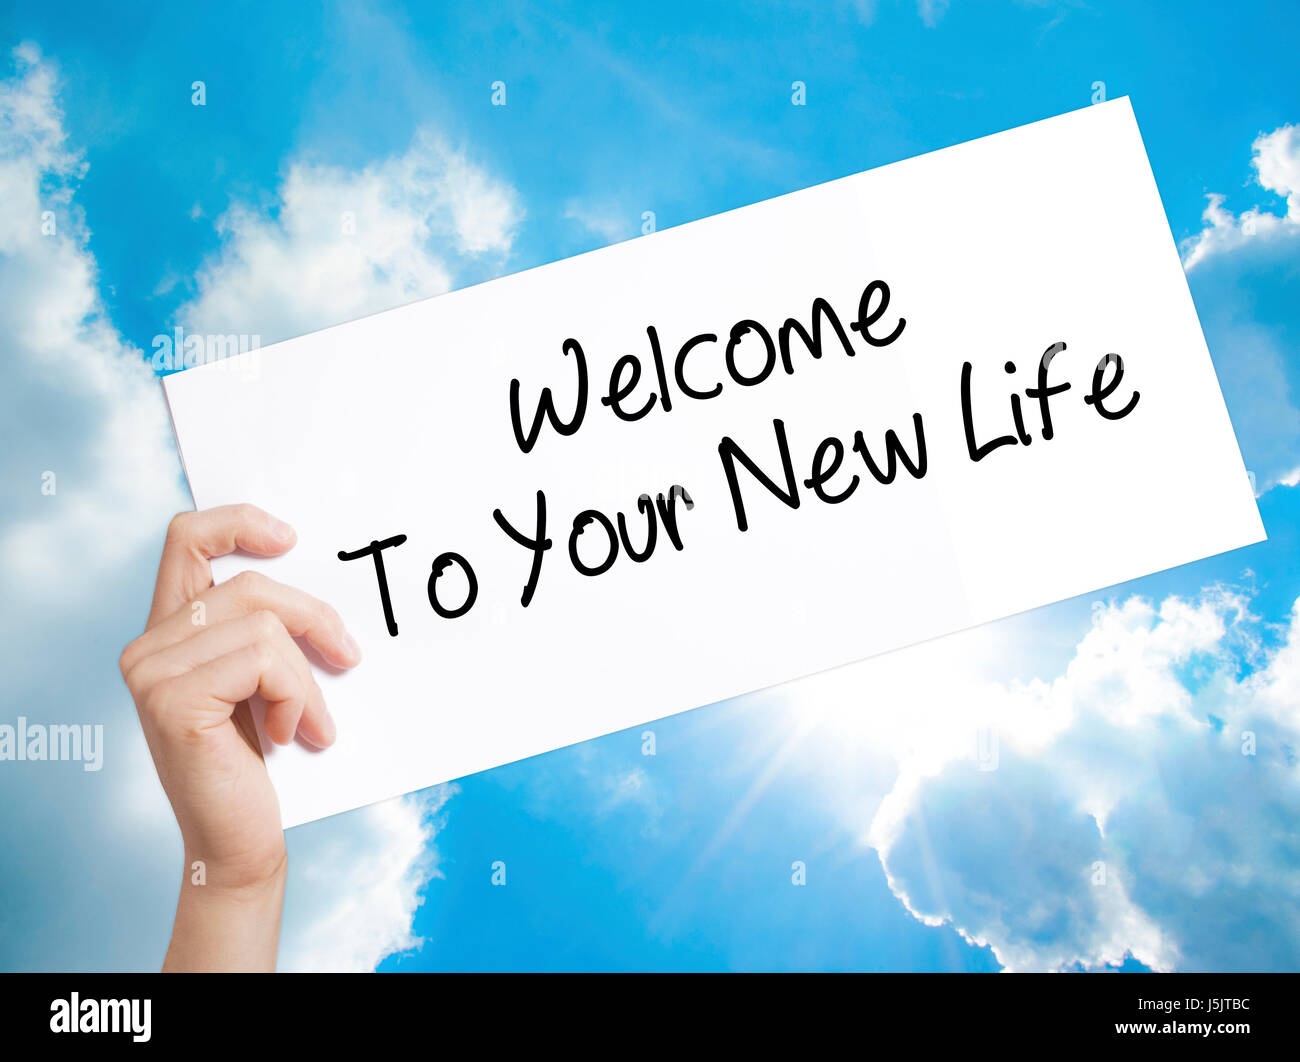 Welcome to your recent life